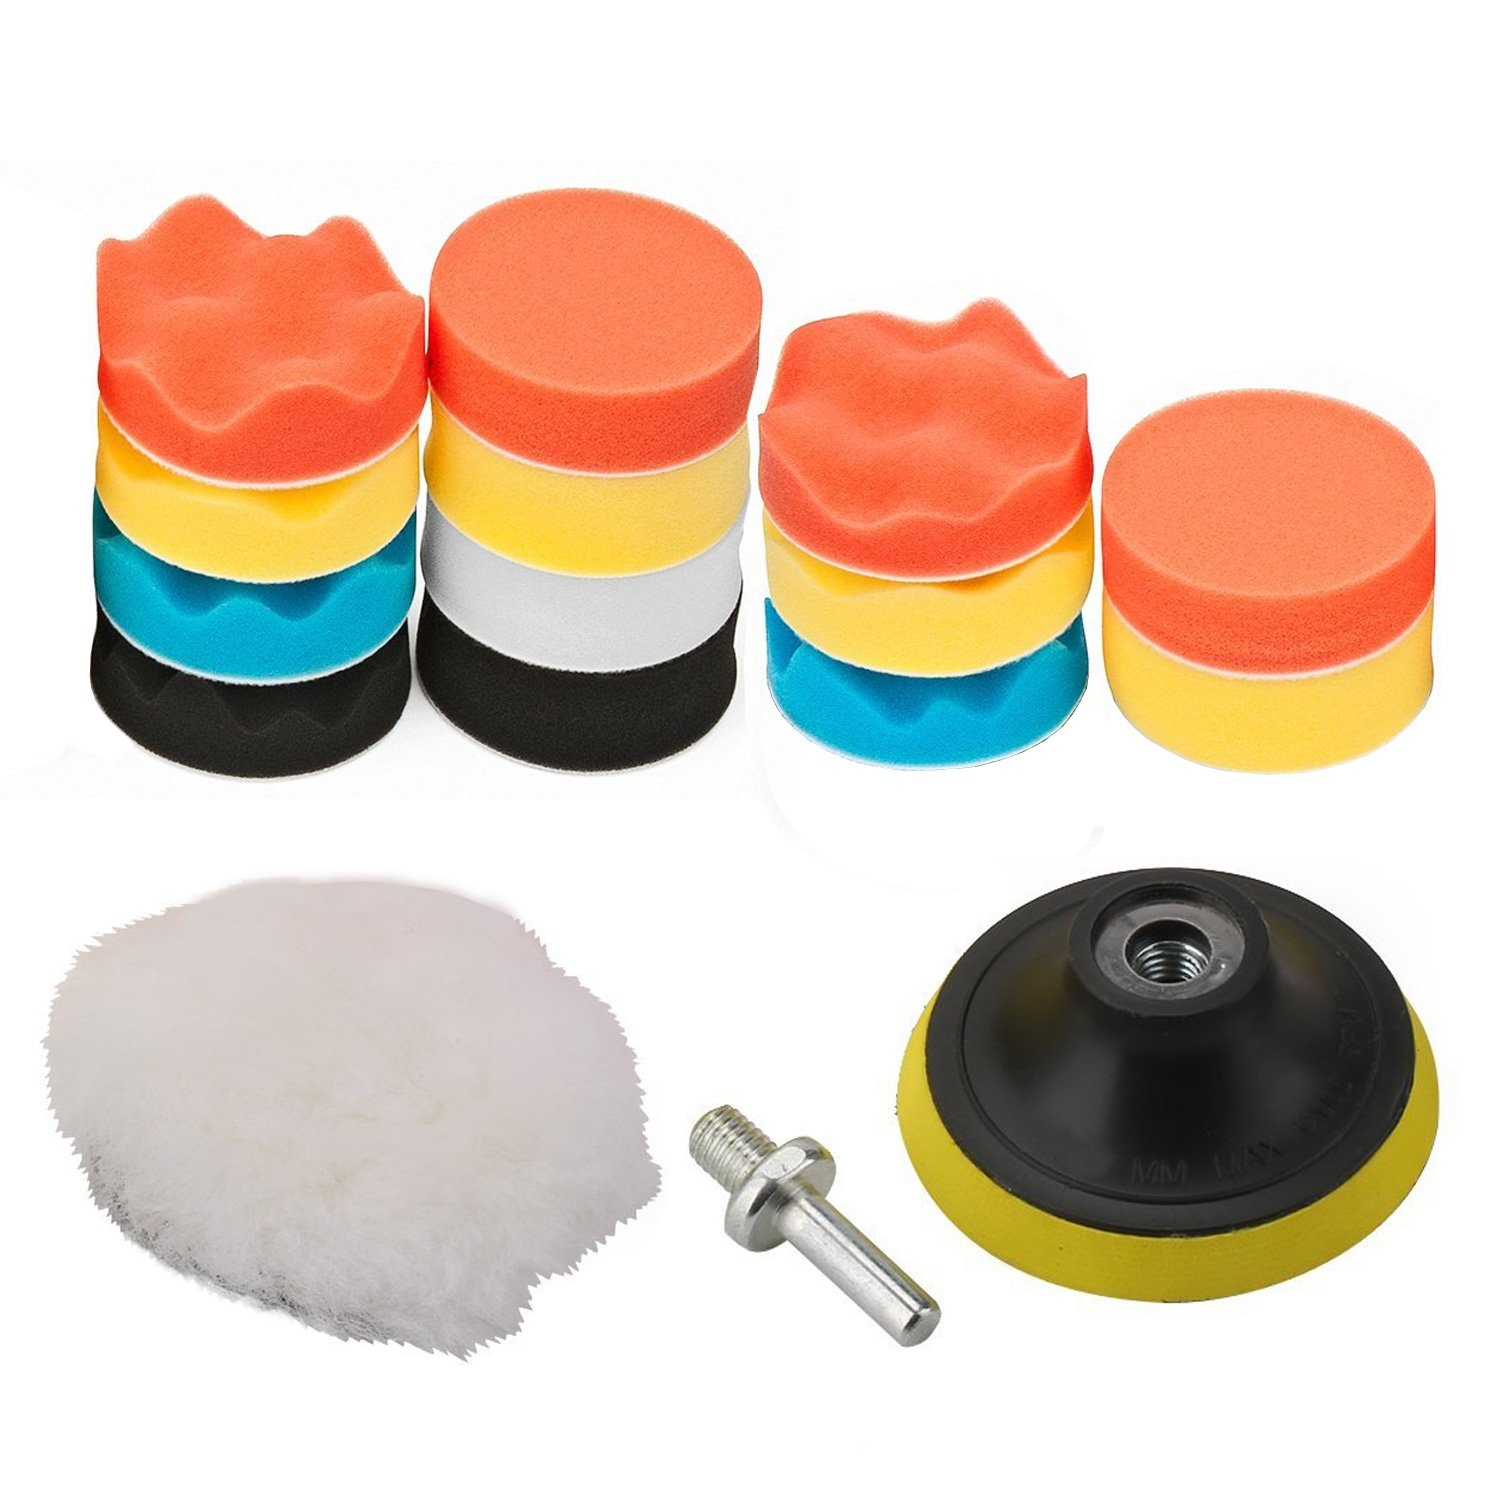 OxoxO 5'/125mm Polishing Buffing Pad Auto Car Drill Polisher Buffer Sponge Pads Set M14 Drill Adapter With Shank (Set of 16)